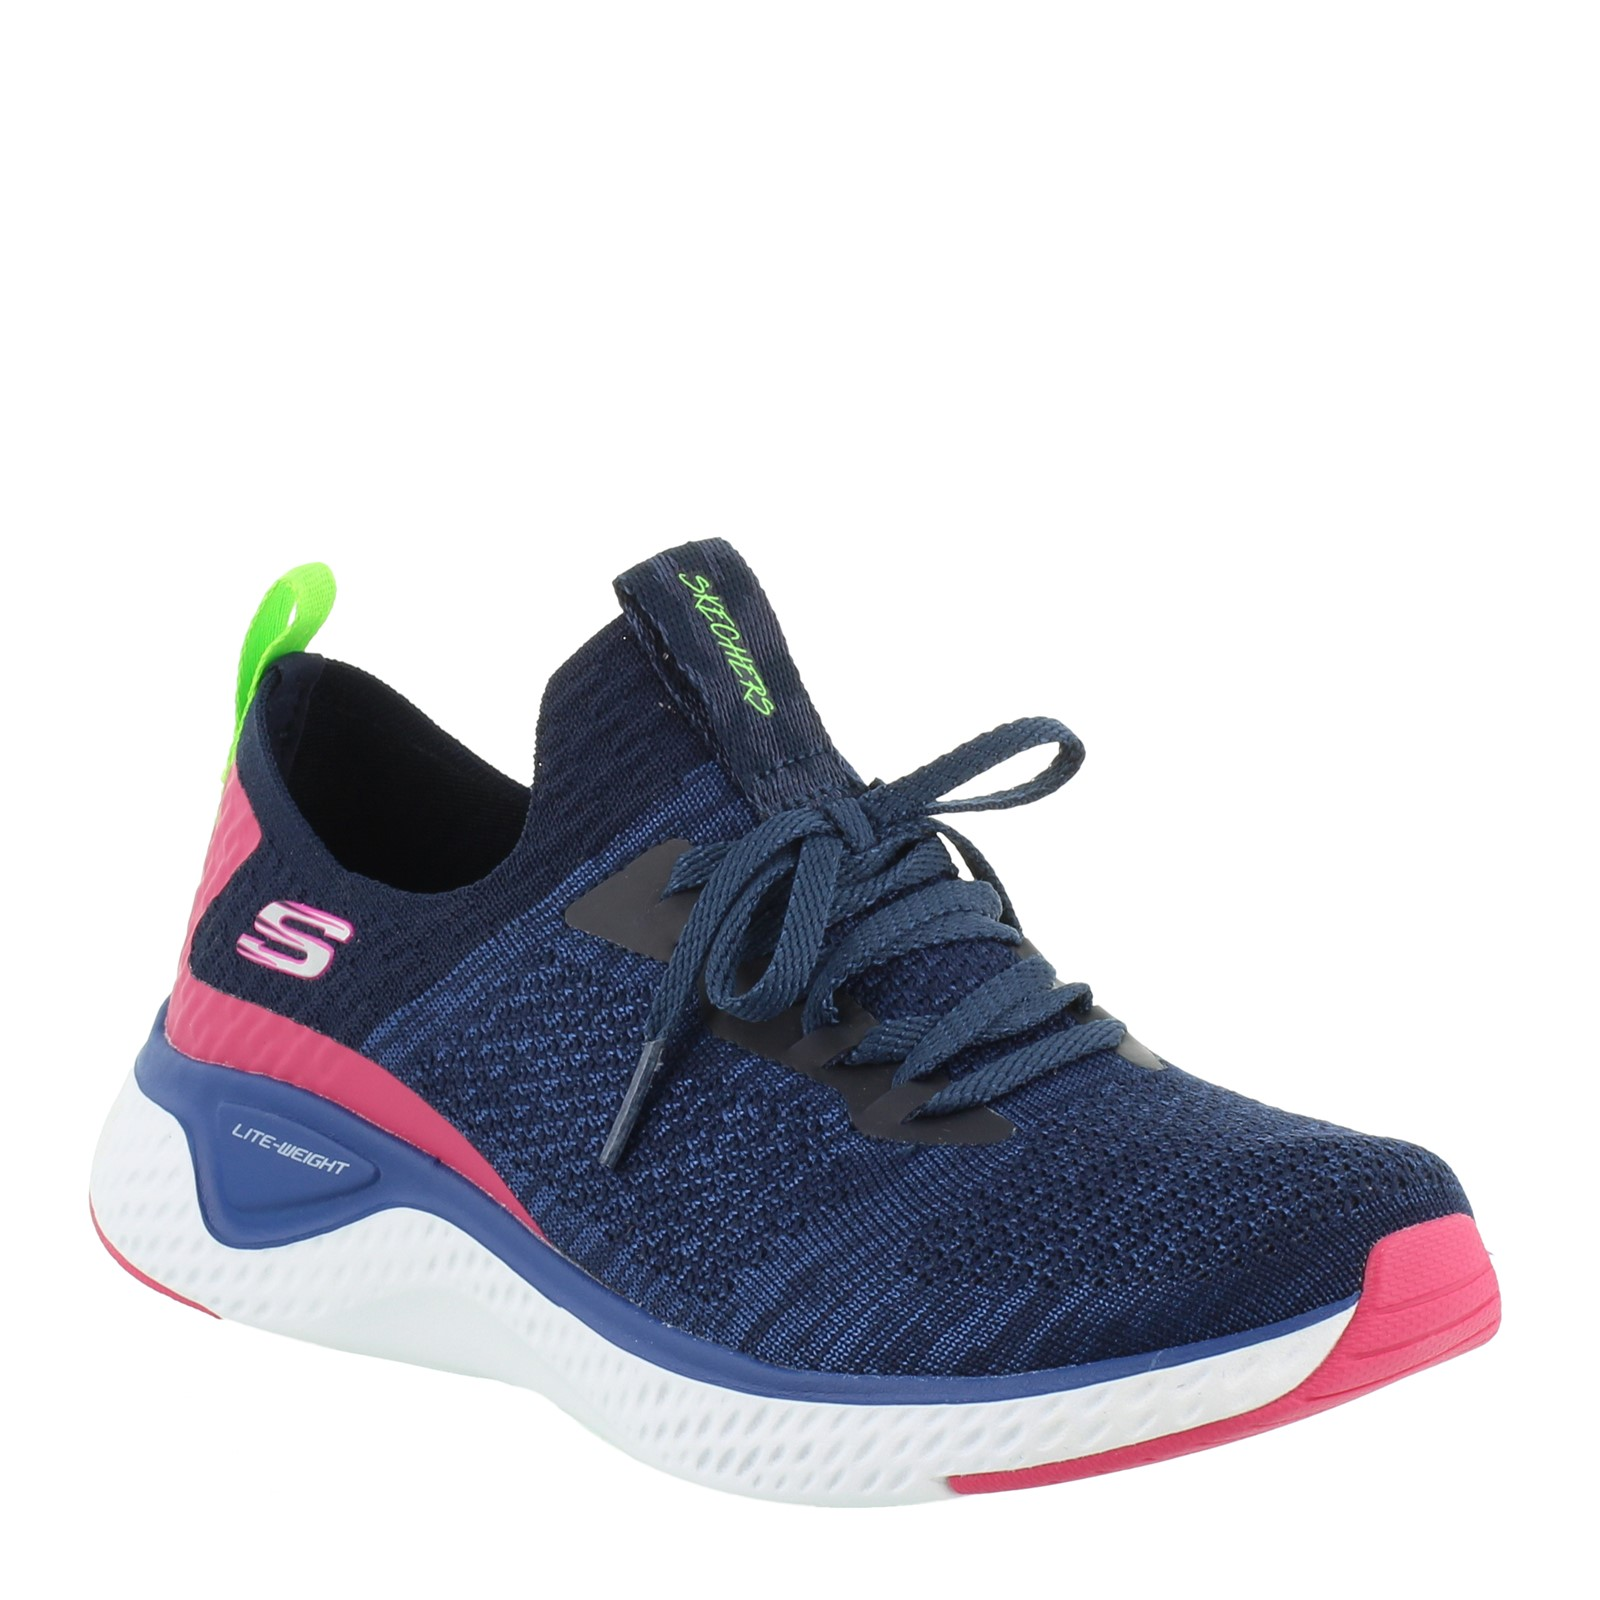 Women's Skechers, Solar Fuse Sneakers